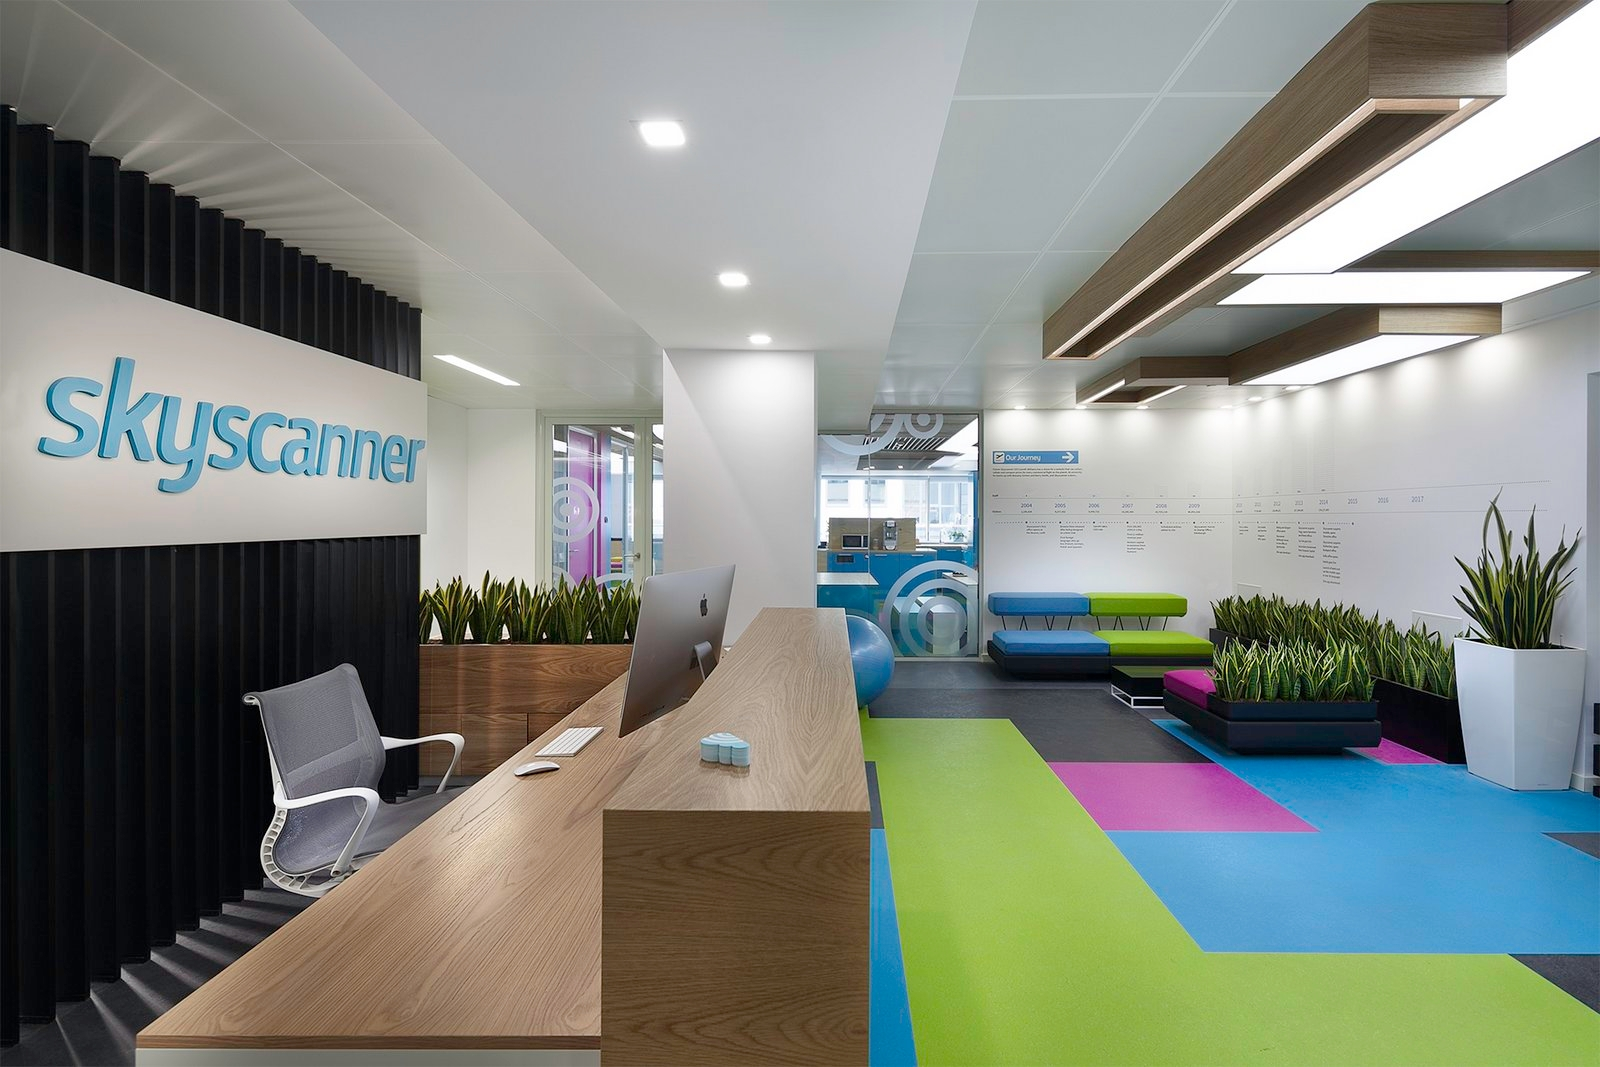 Swell 23 Office Space Designs Decorating Ideas Design Trends Largest Home Design Picture Inspirations Pitcheantrous